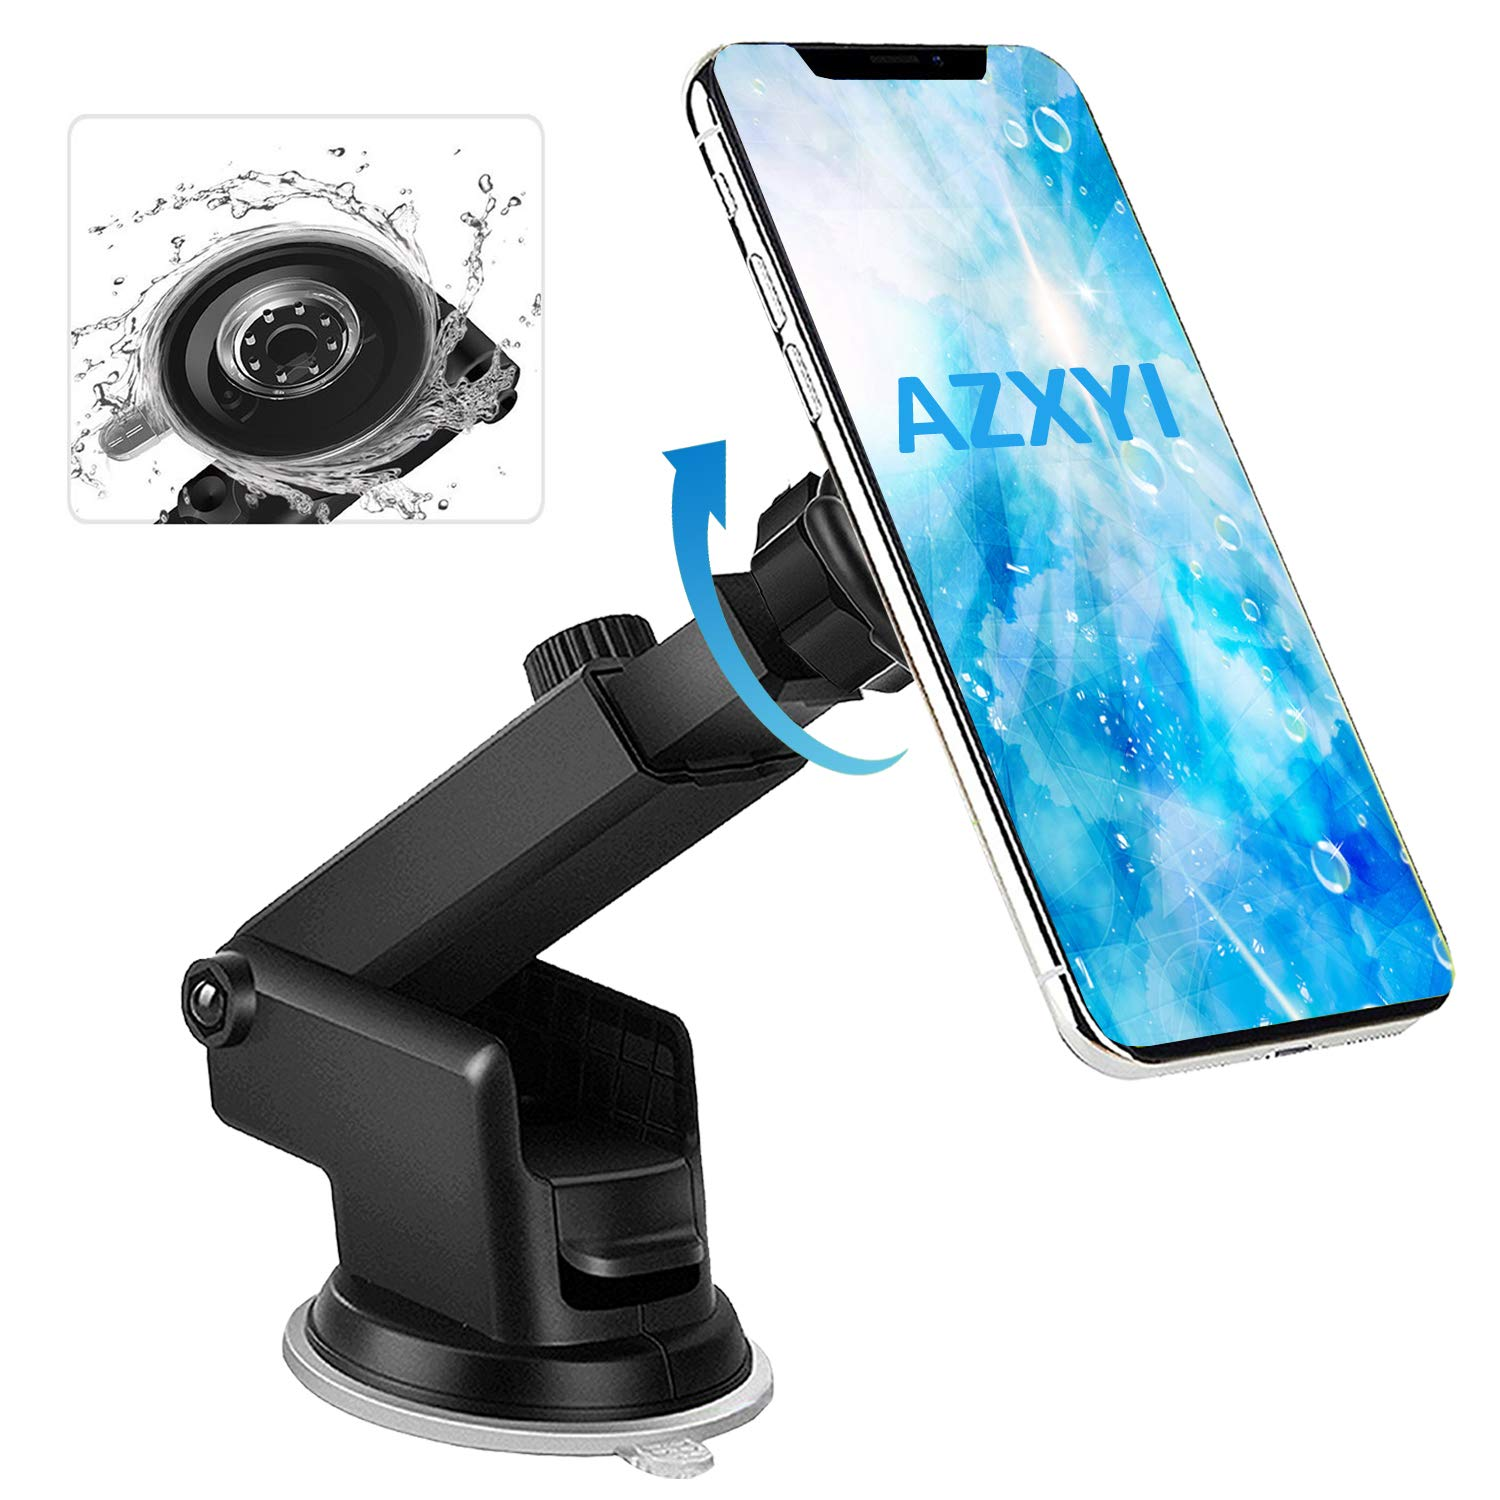 Pop Car Mount, AZXYI 360° Rotation Pop Out Clip Mount in Car Air Vent and Pop Out Stand Car Mount on Dashboard, Expanding Phone Standing and Grip for All Pop Stand User - [2 Pack]